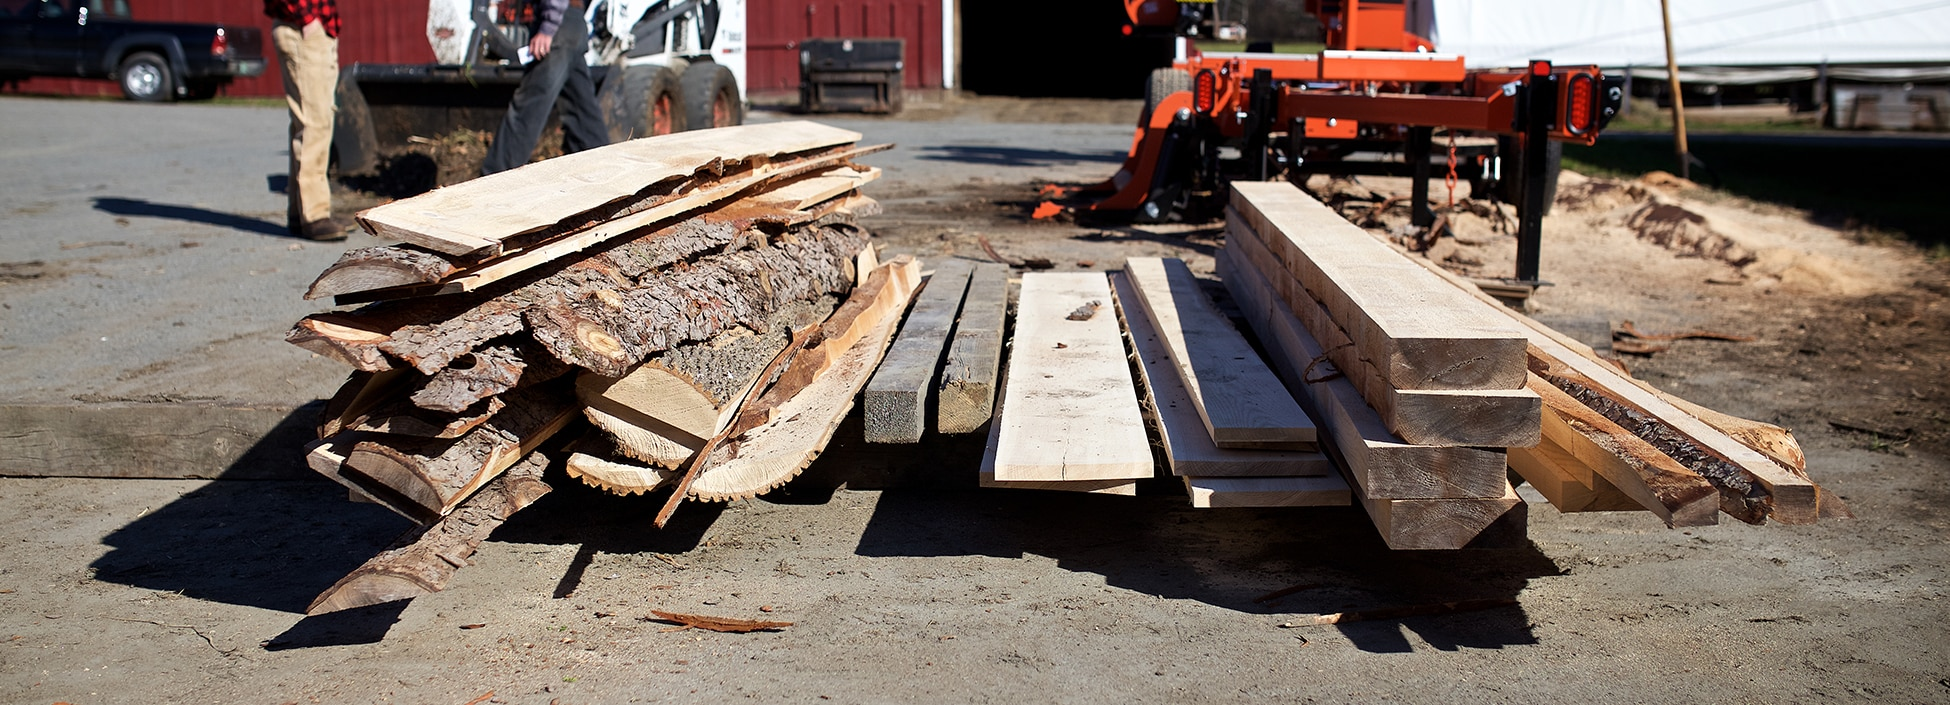 Core cutting class on the Randolph Center campus, forestry, wood cutting